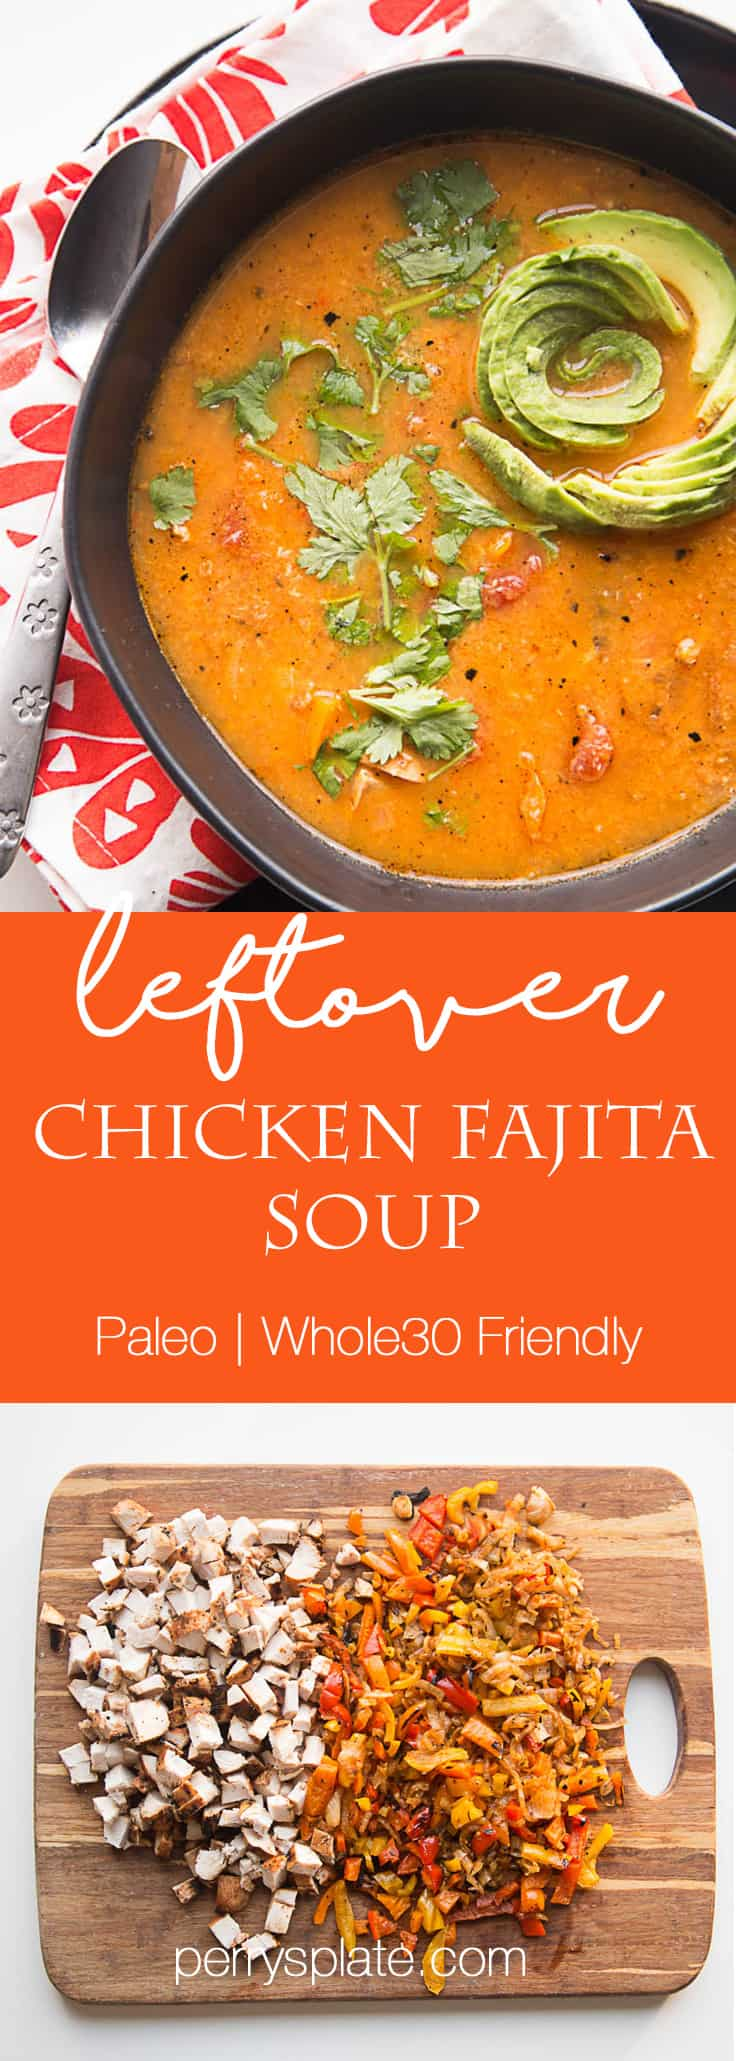 Use your chicken fajita leftovers to make this Leftover Chicken Fajita Soup! | Paleo recipes | Whole30 recipes | soup recipes | gluten-free recipes | low carb recipes | healthy soup recipes | perrysplate.com